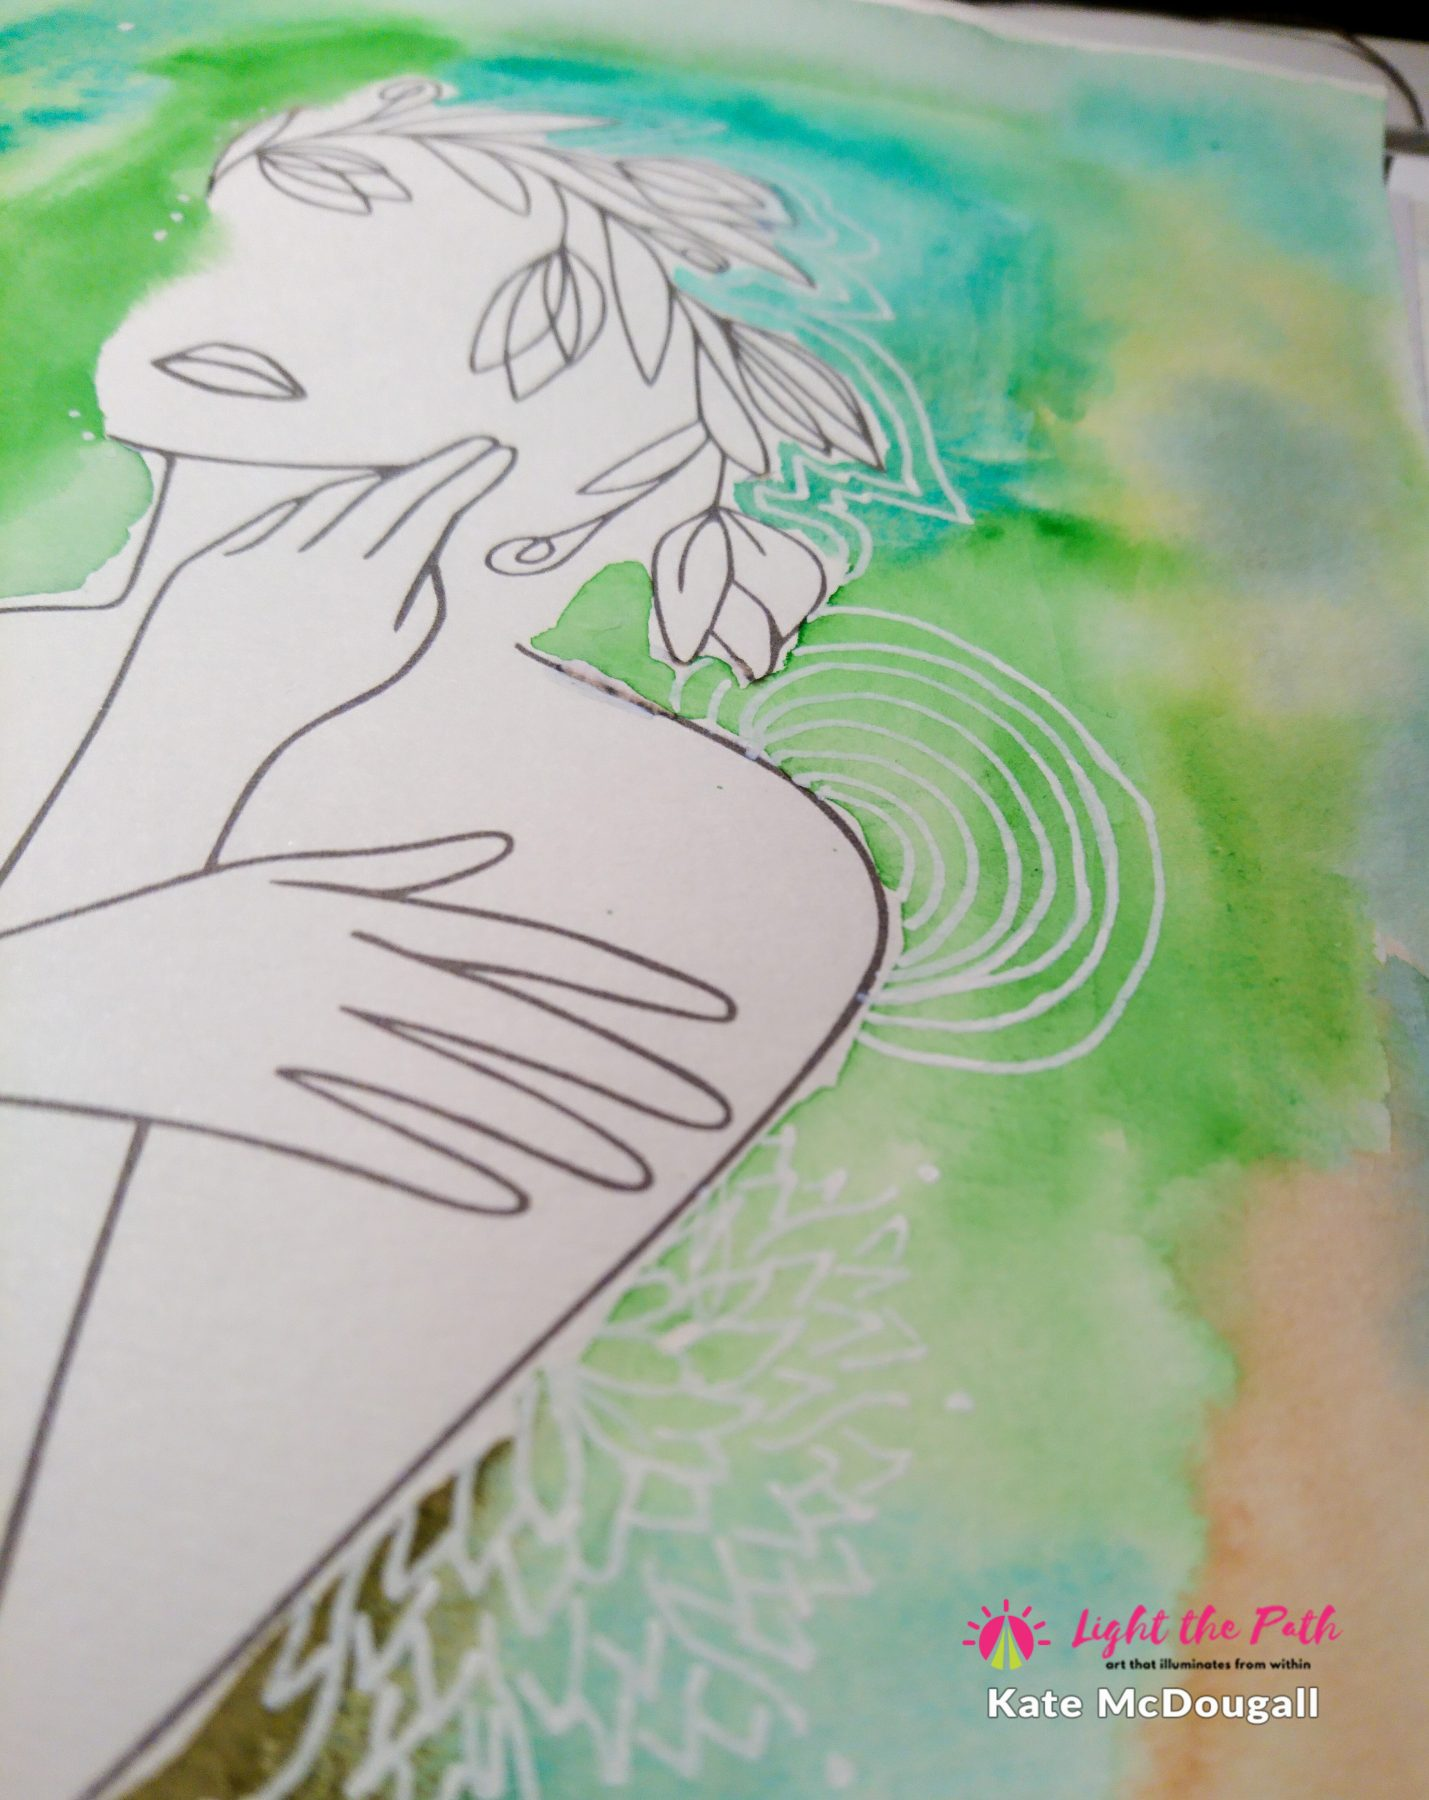 An up close image of a watercolour and line art journal page.